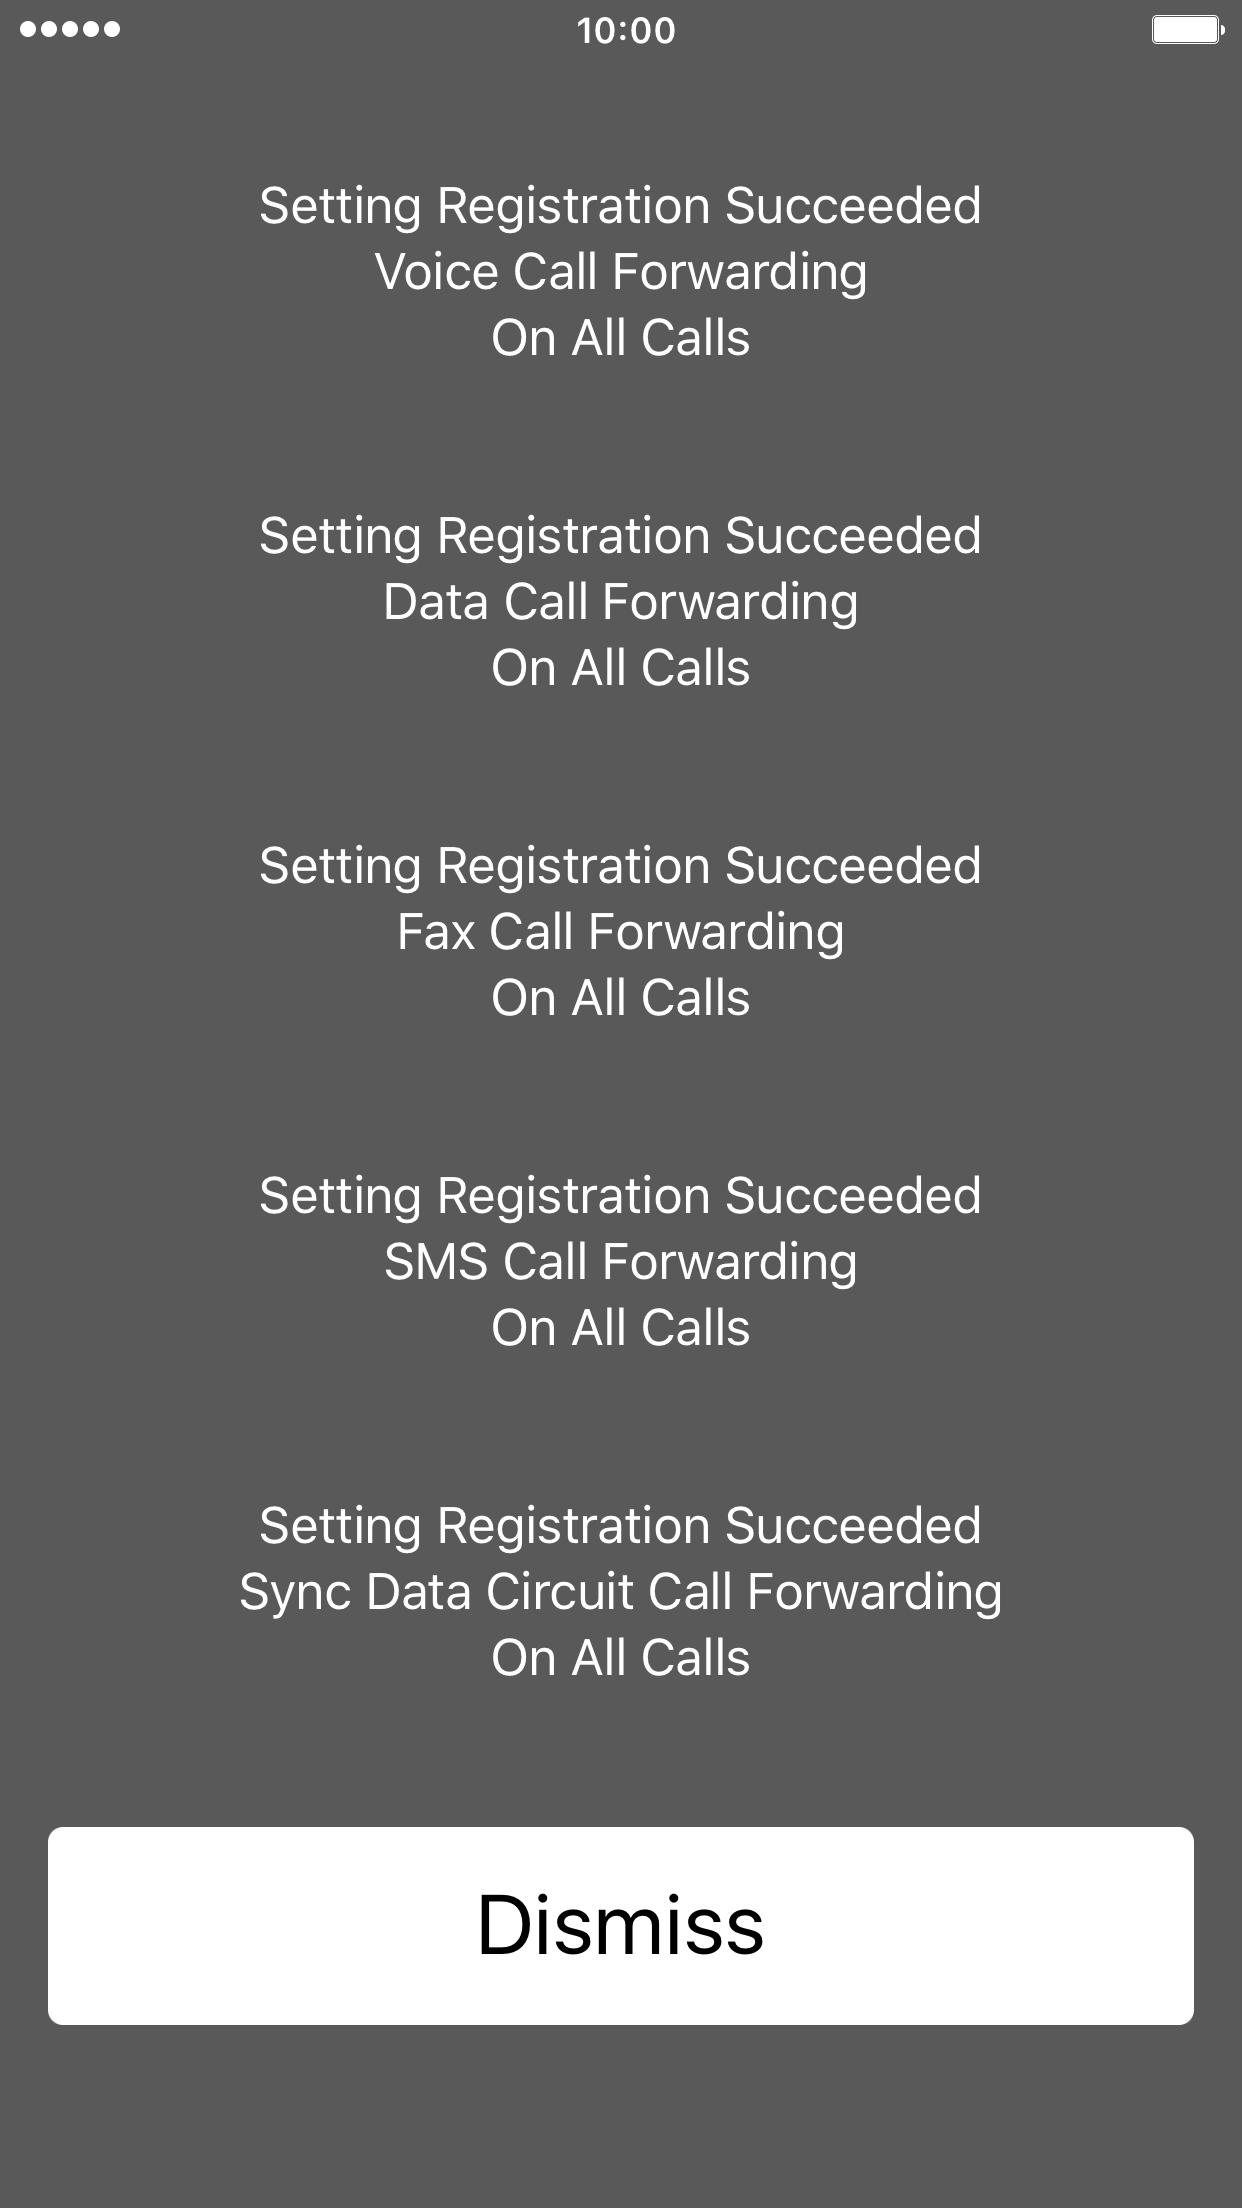 Iphone 6 voicemail volume - Divert Calls To Your Voicemail